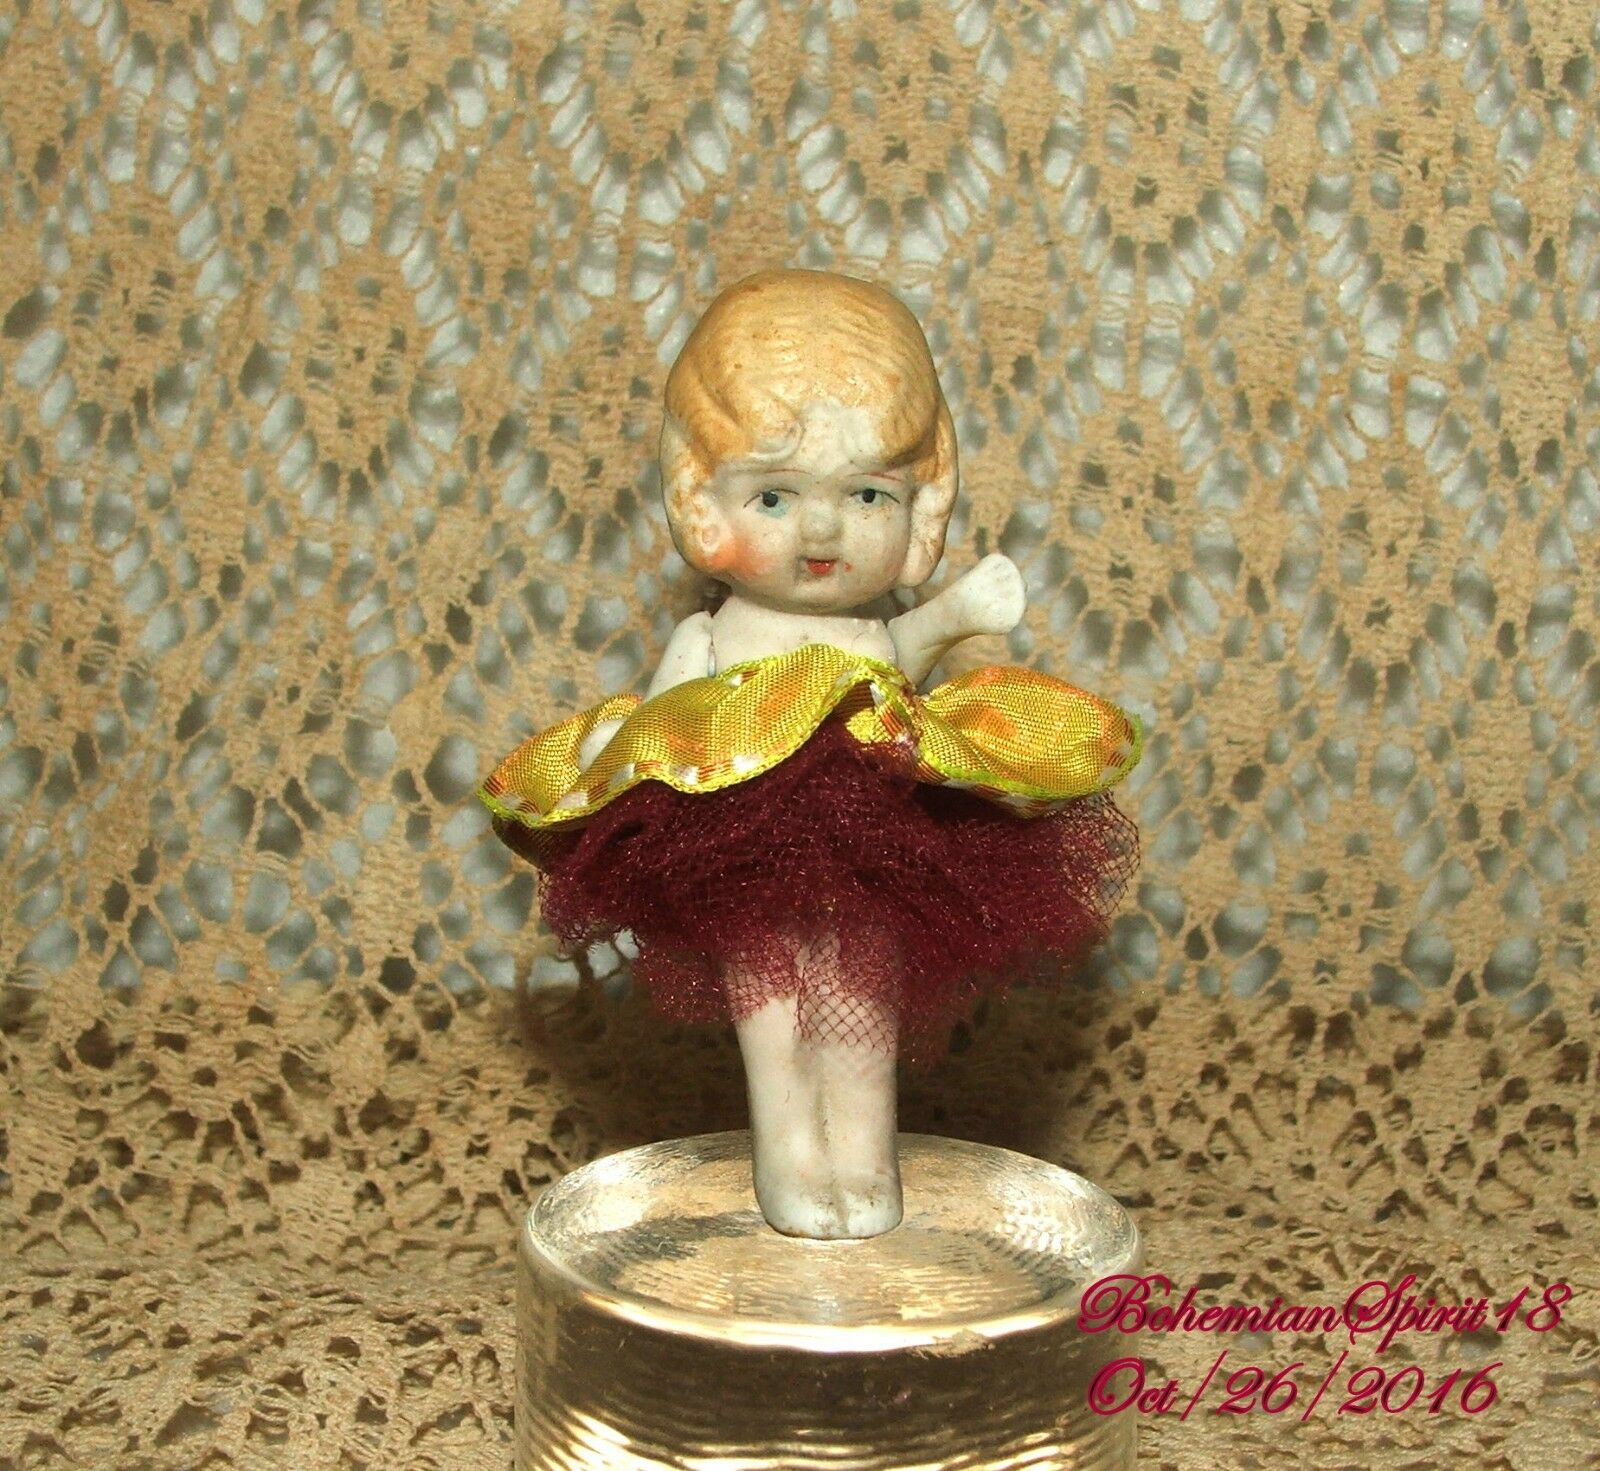 ANTIQUE JAPAN BISQUE FROZEN CHARLOTTE JOINTED ARMS MINIATURE 3'' GIRL DOLL